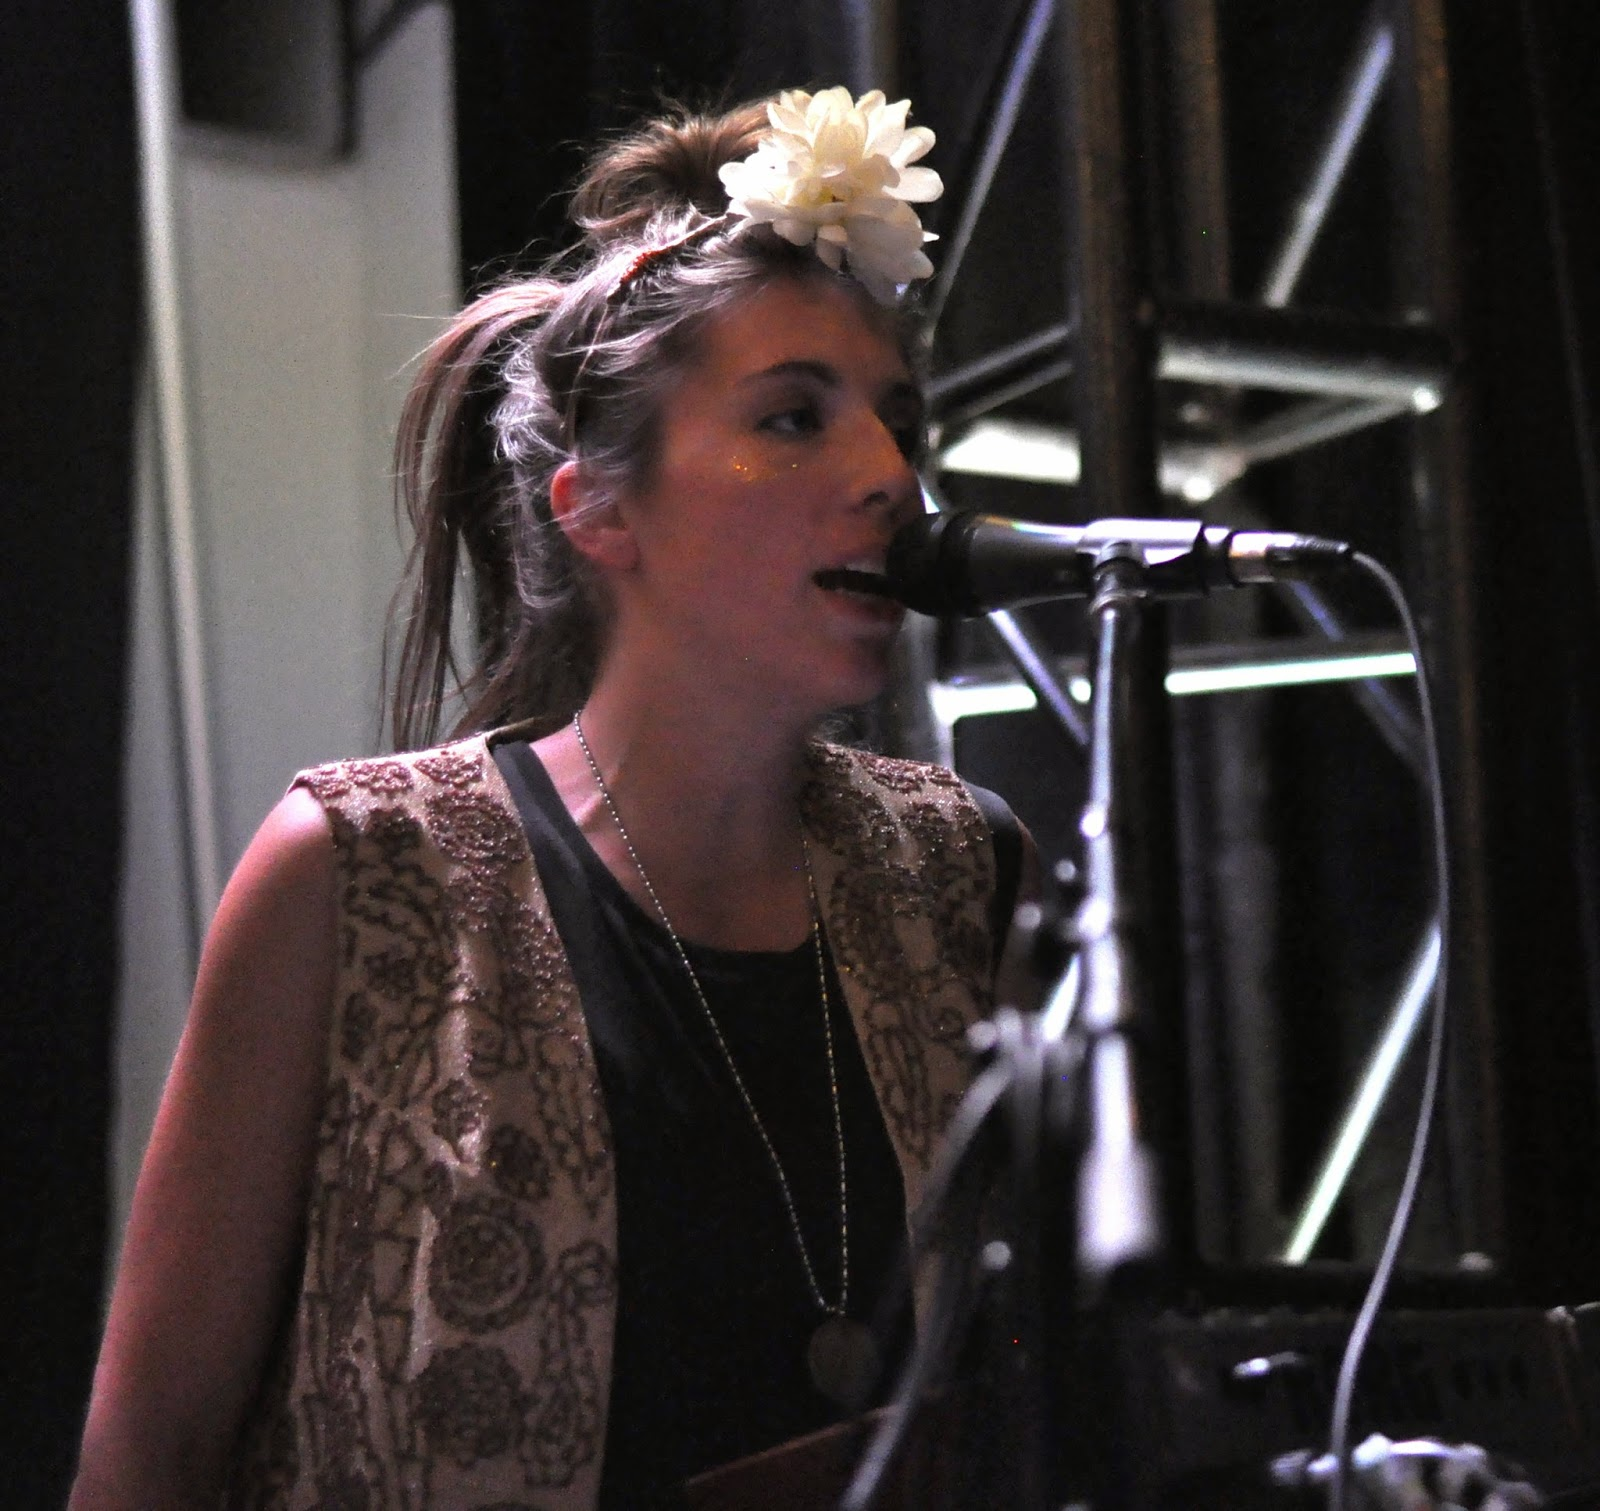 The Edward Day Gallery on Queen Street hosted Doomsquad at NXNE 2014.